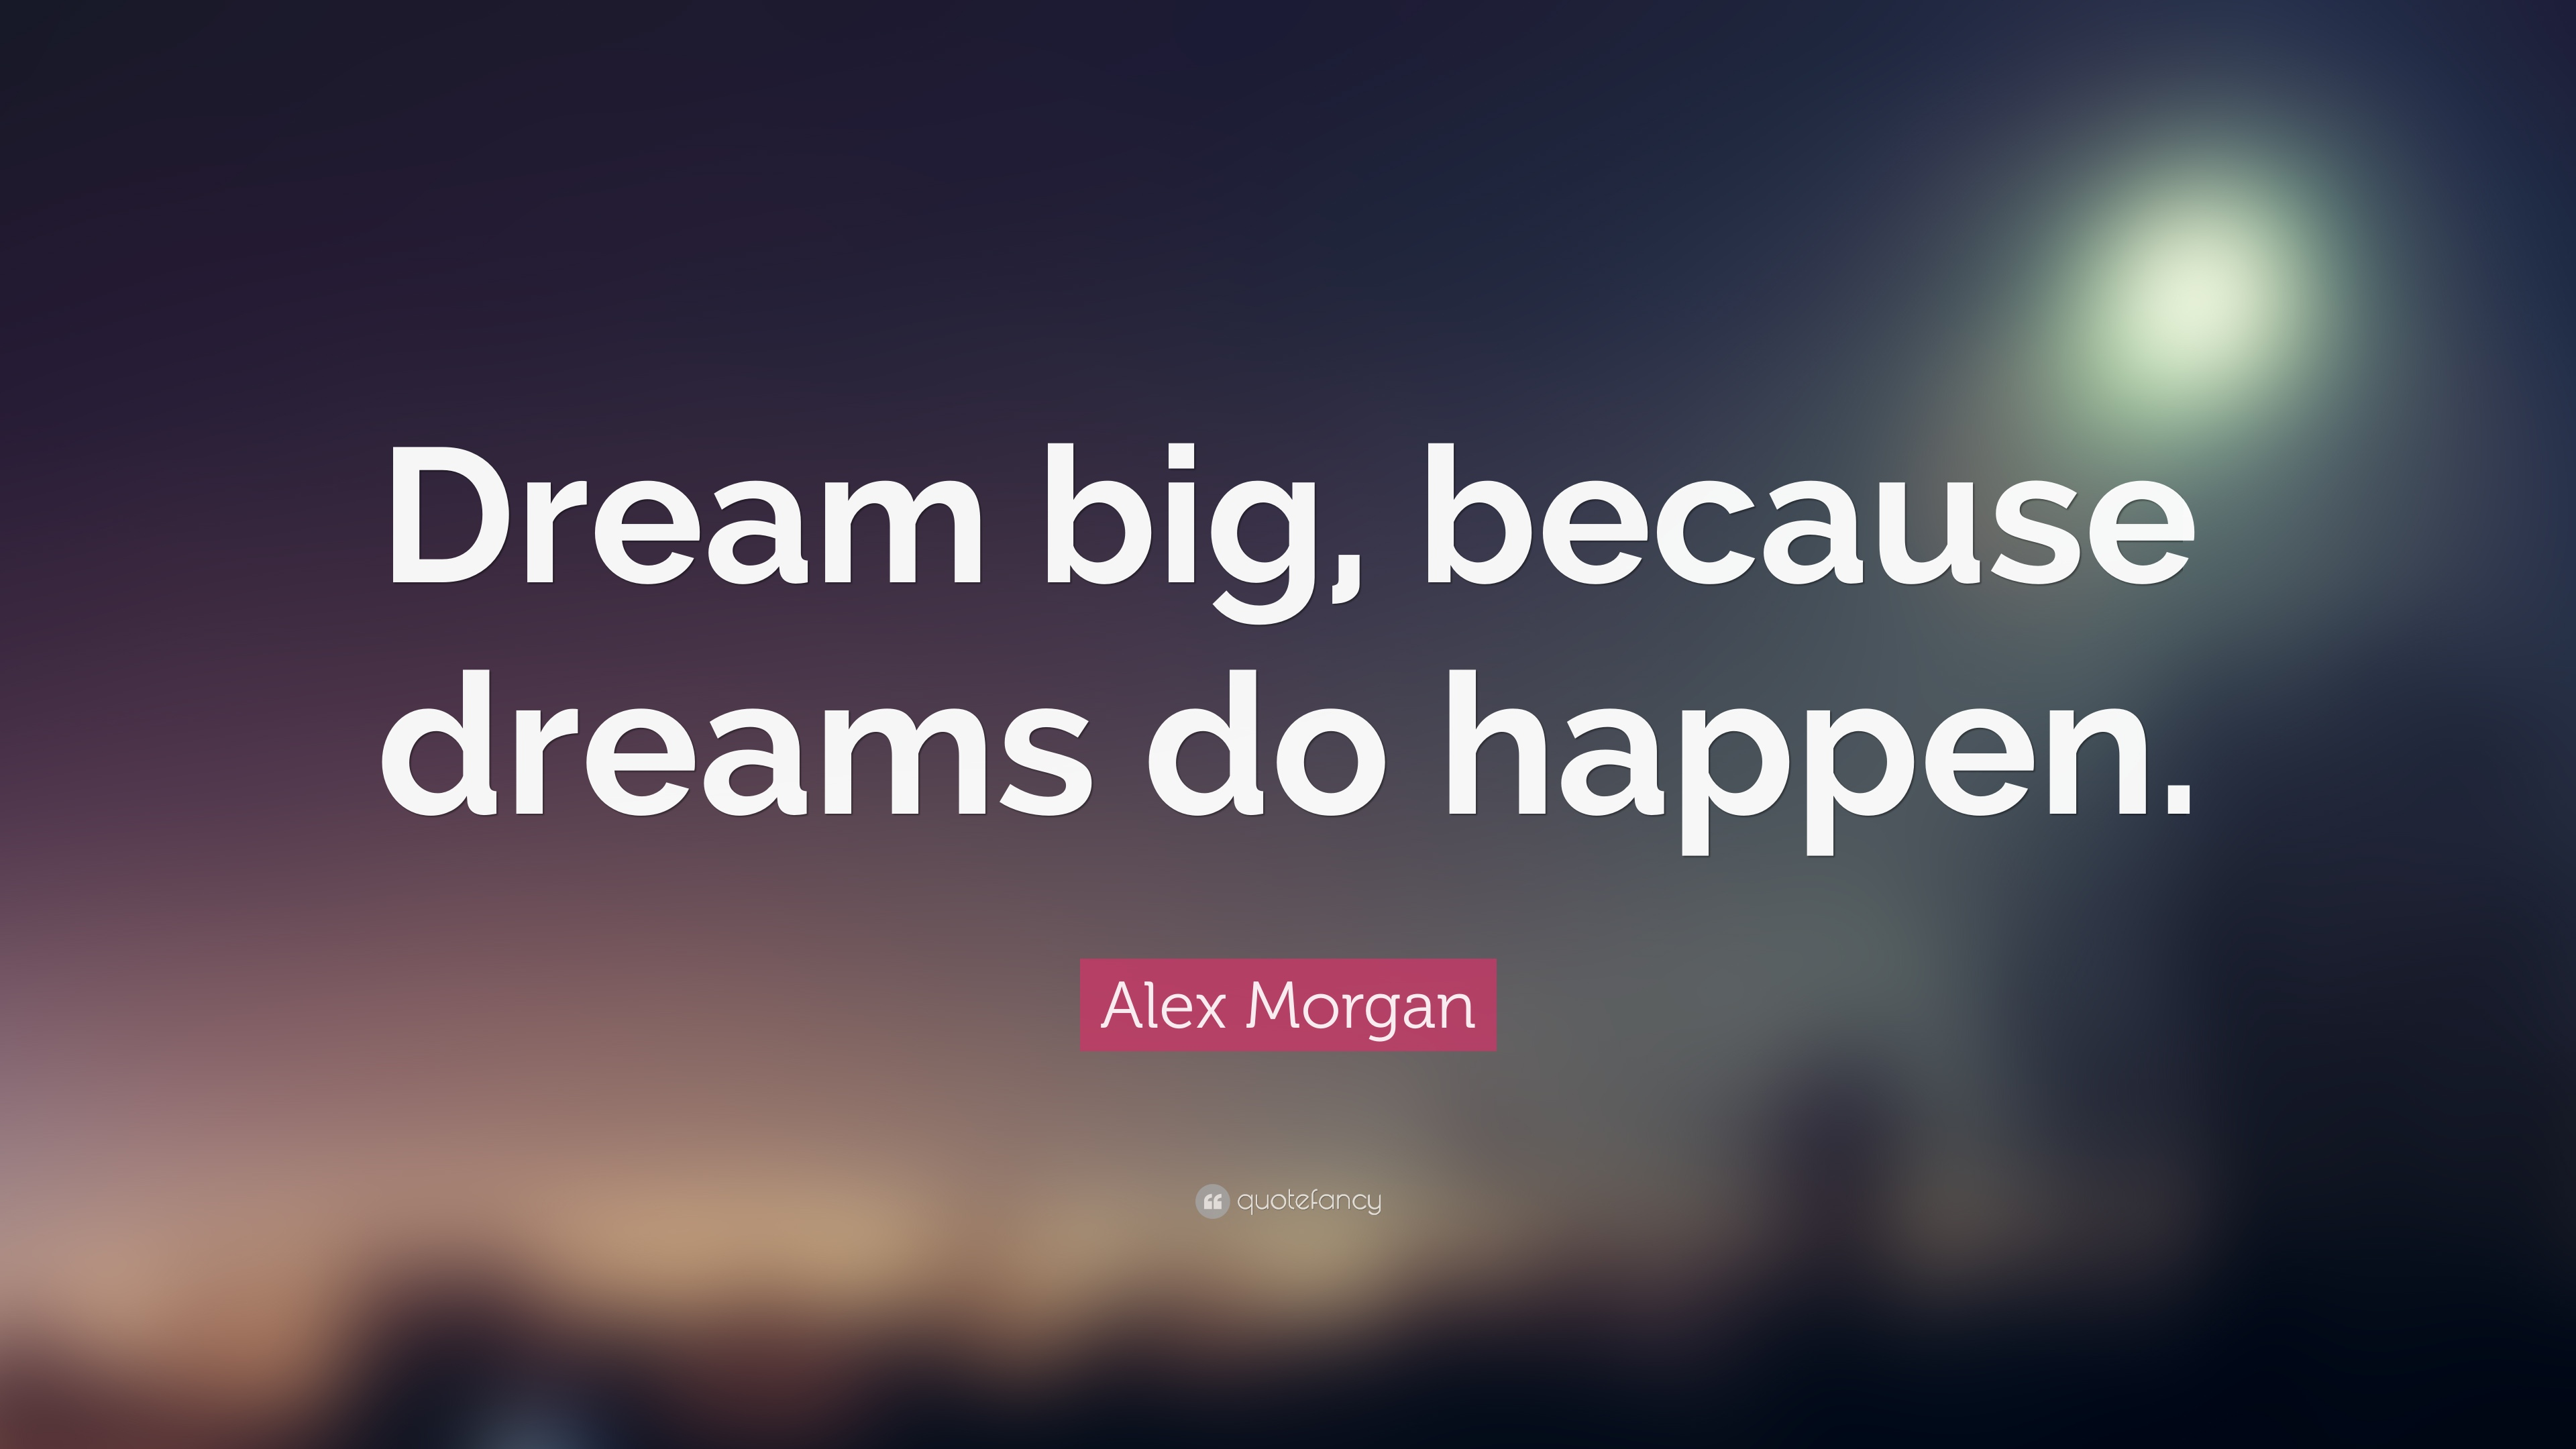 Alex morgan quotes 4 wallpapers quotefancy alex morgan quote dream big because dreams do happen voltagebd